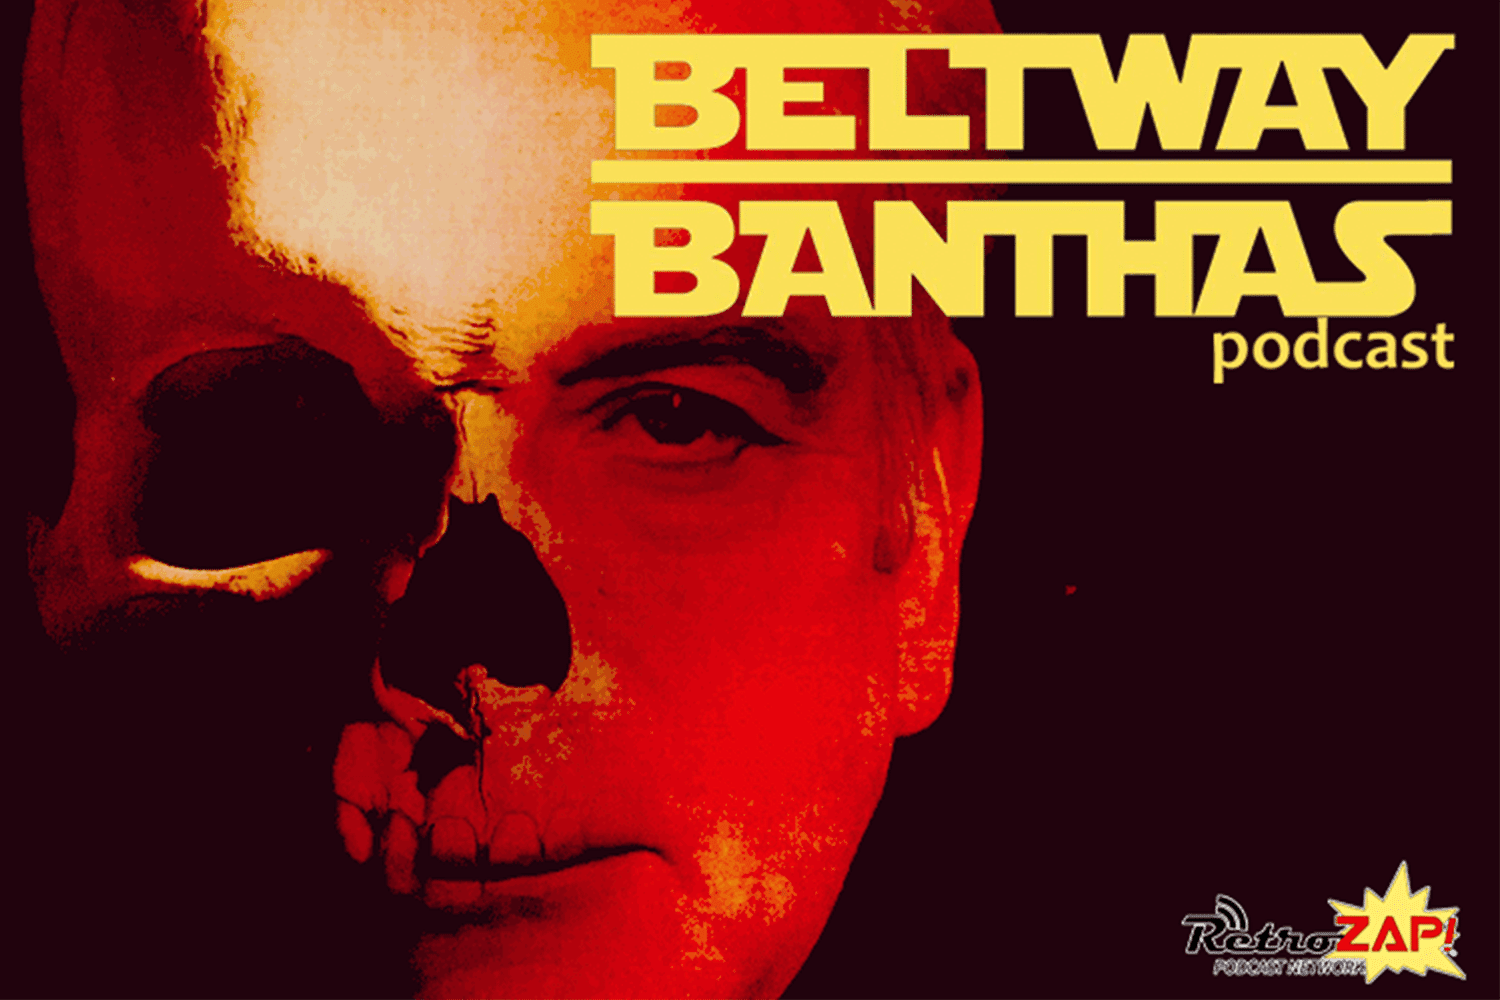 Beltway Banthas Podcast Special Review